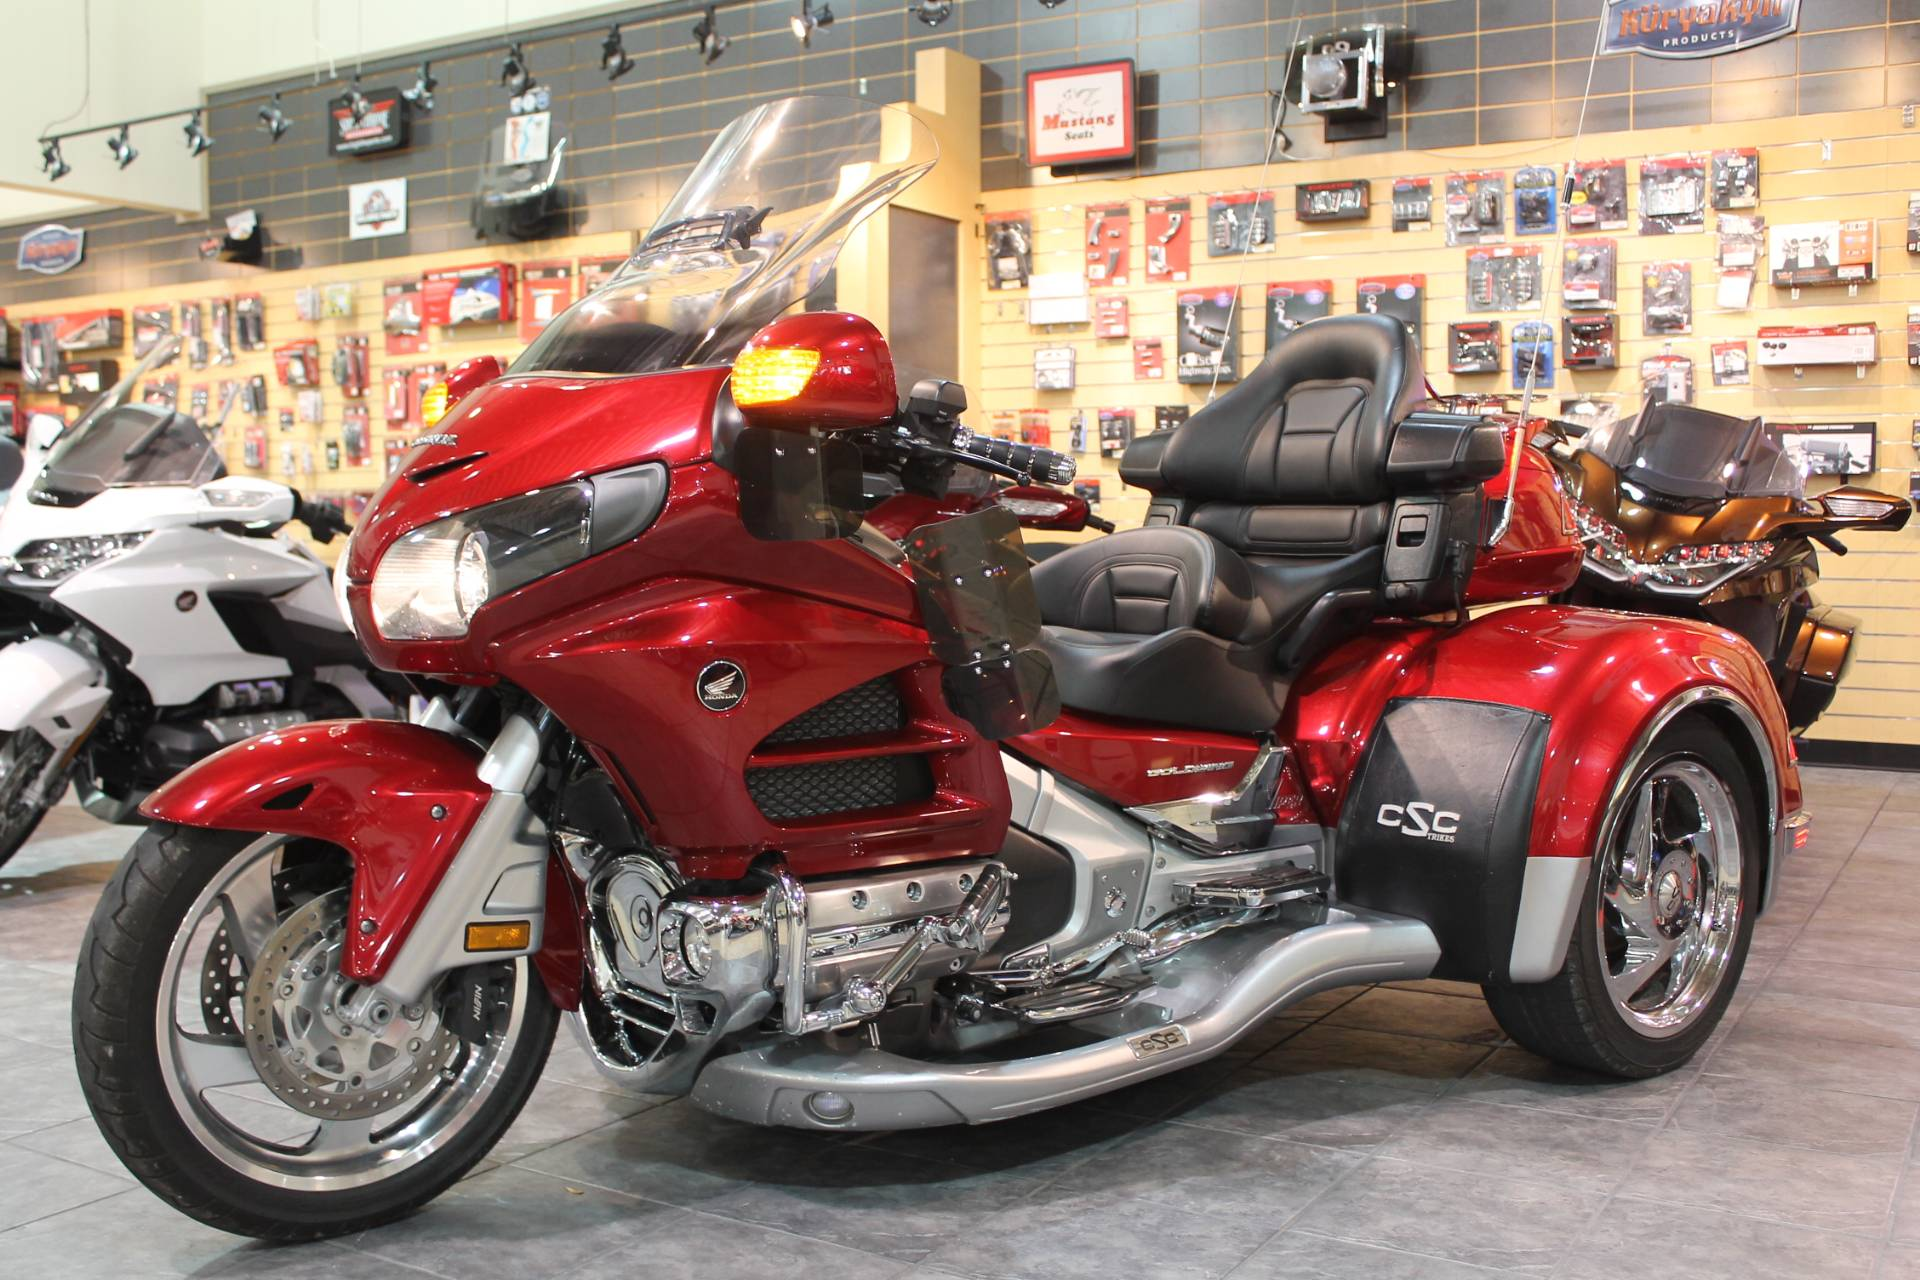 2014 Honda GL1800 Goldwing California Side Car Viper 1